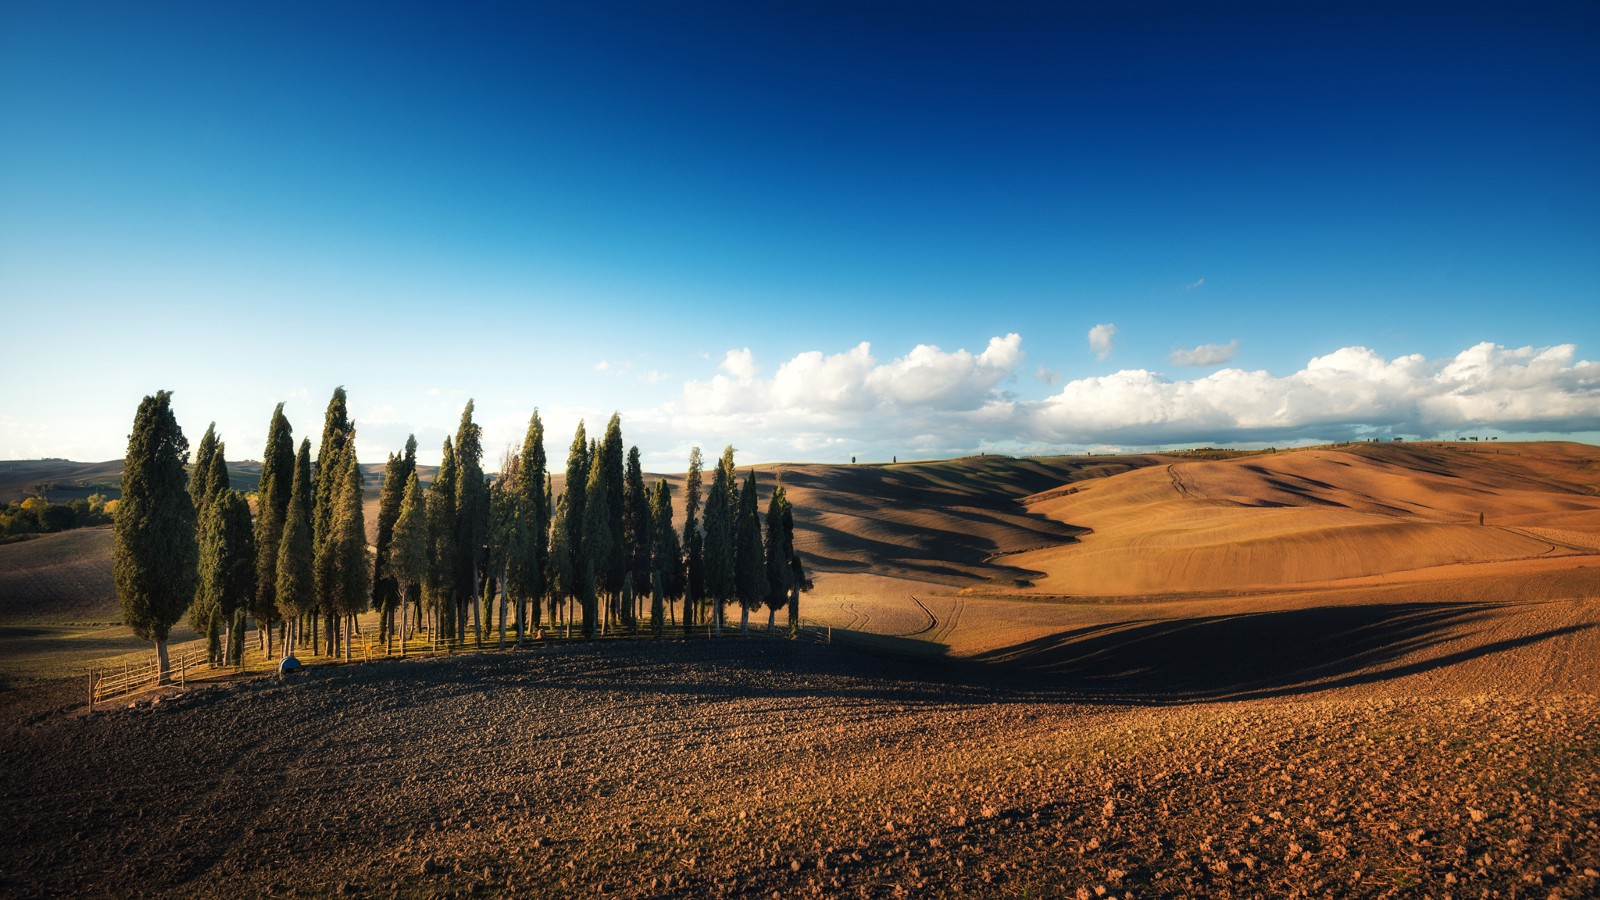 Cypress trees in Tuscany, Italy